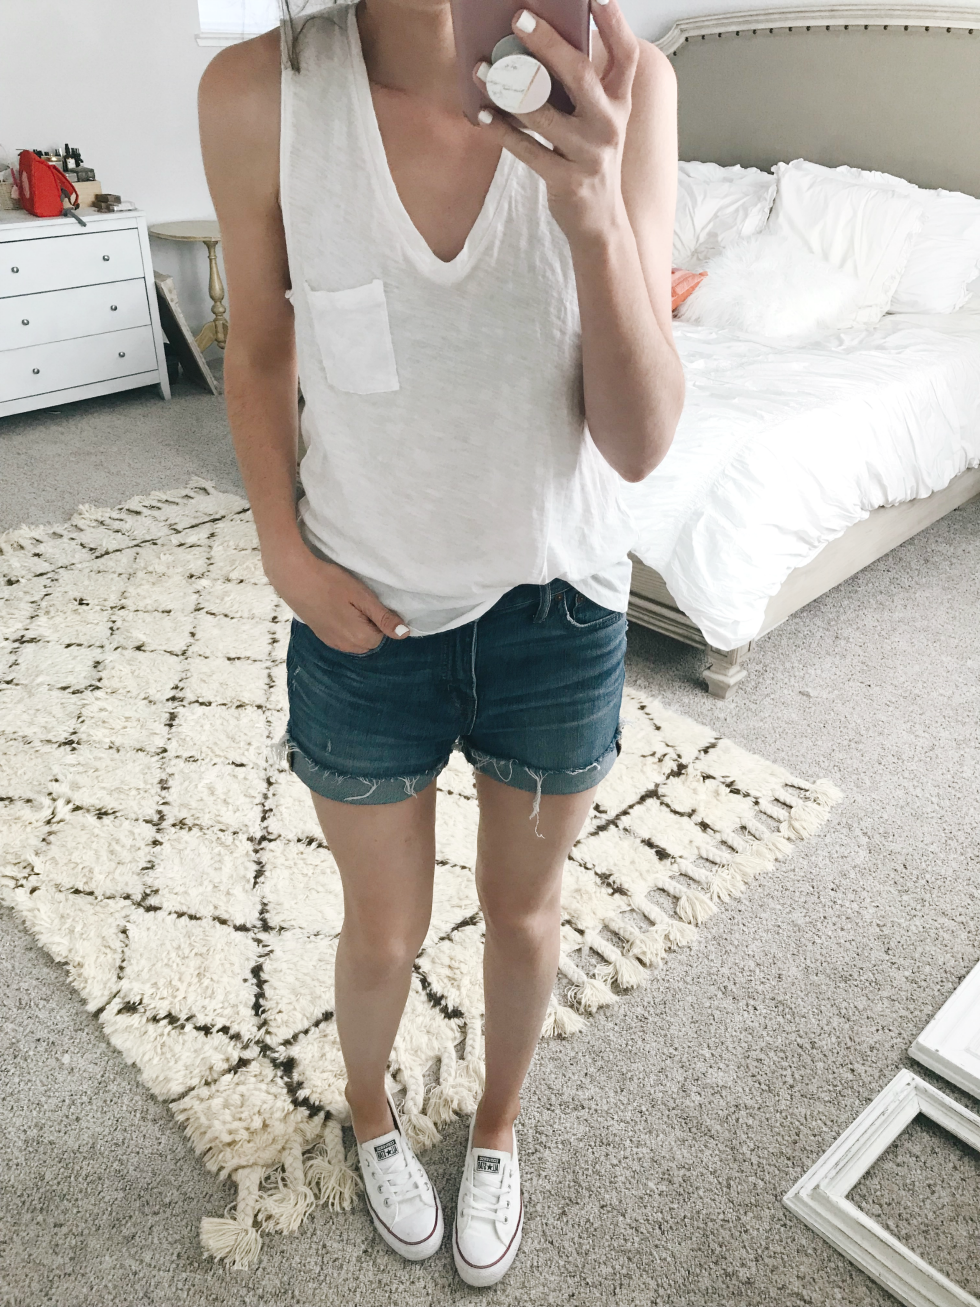 a8efe4fc29e1f TANK (I size up for a slouchy fit) | SHORTS + HERE (true to size) | SHOES  (true to size)